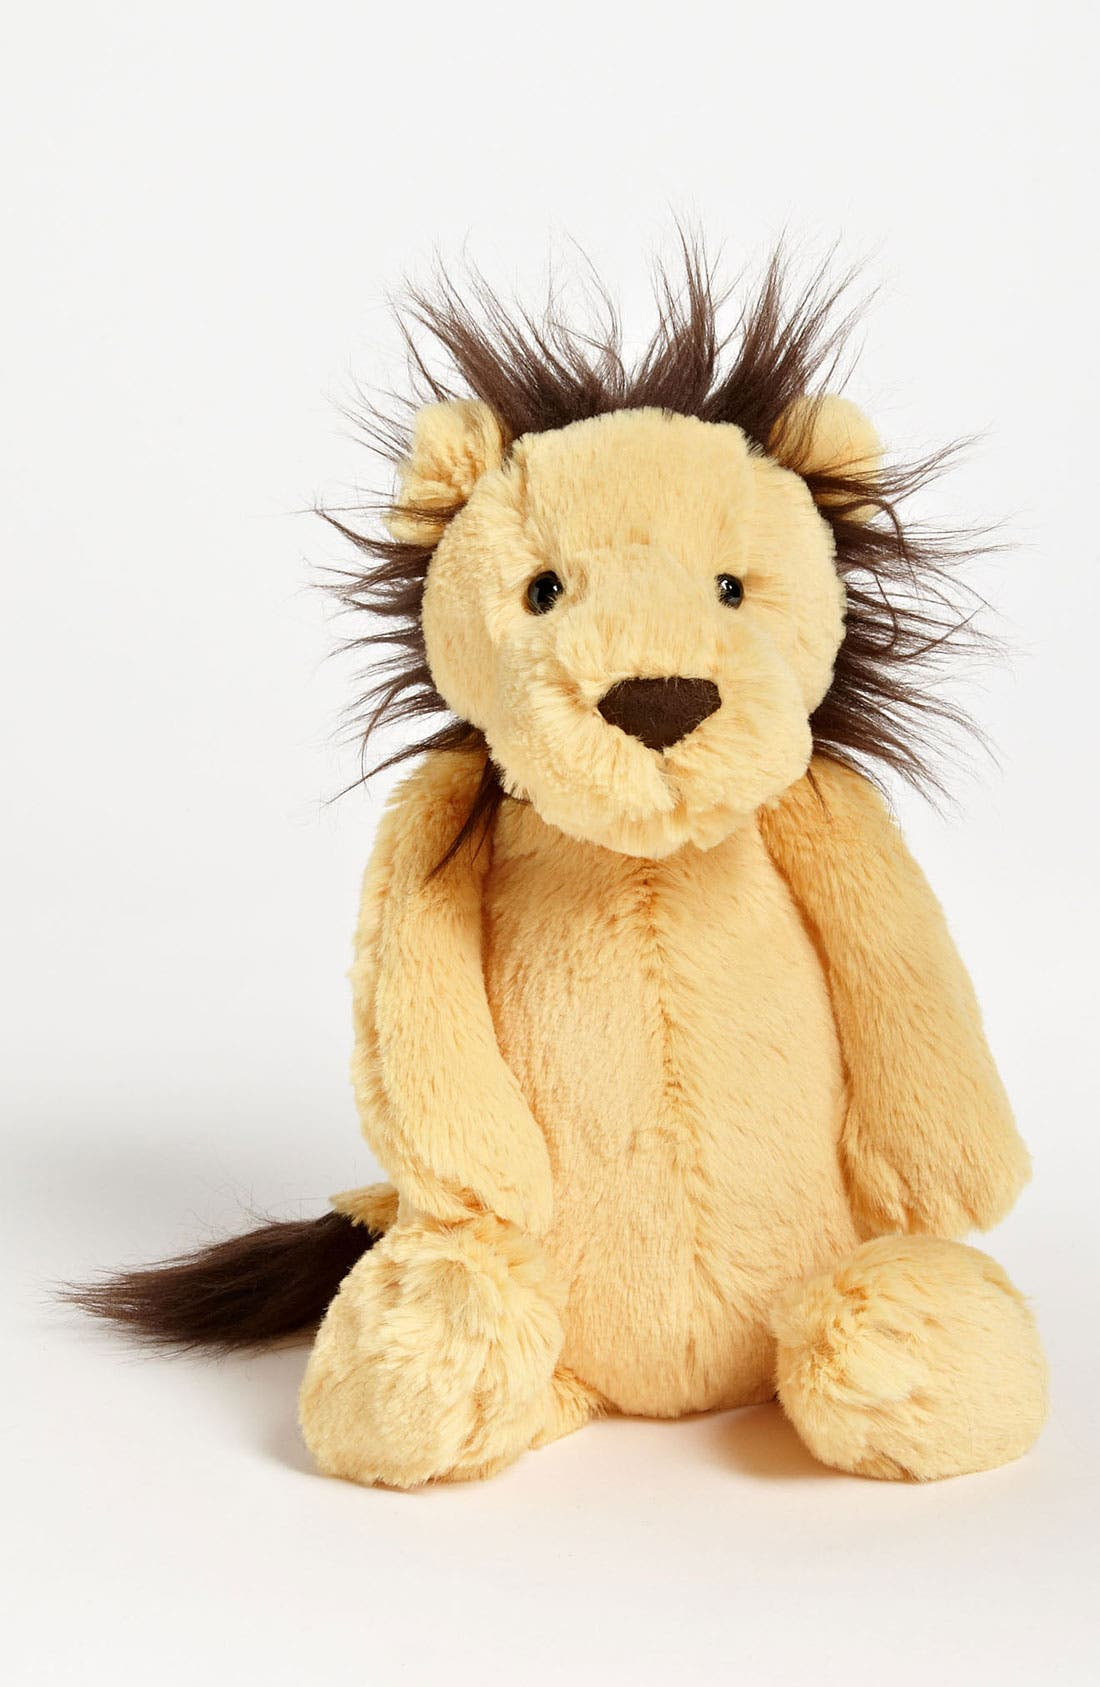 Alternate Image 1 Selected - Jellycat 'Bashful Lion' Stuffed Animal